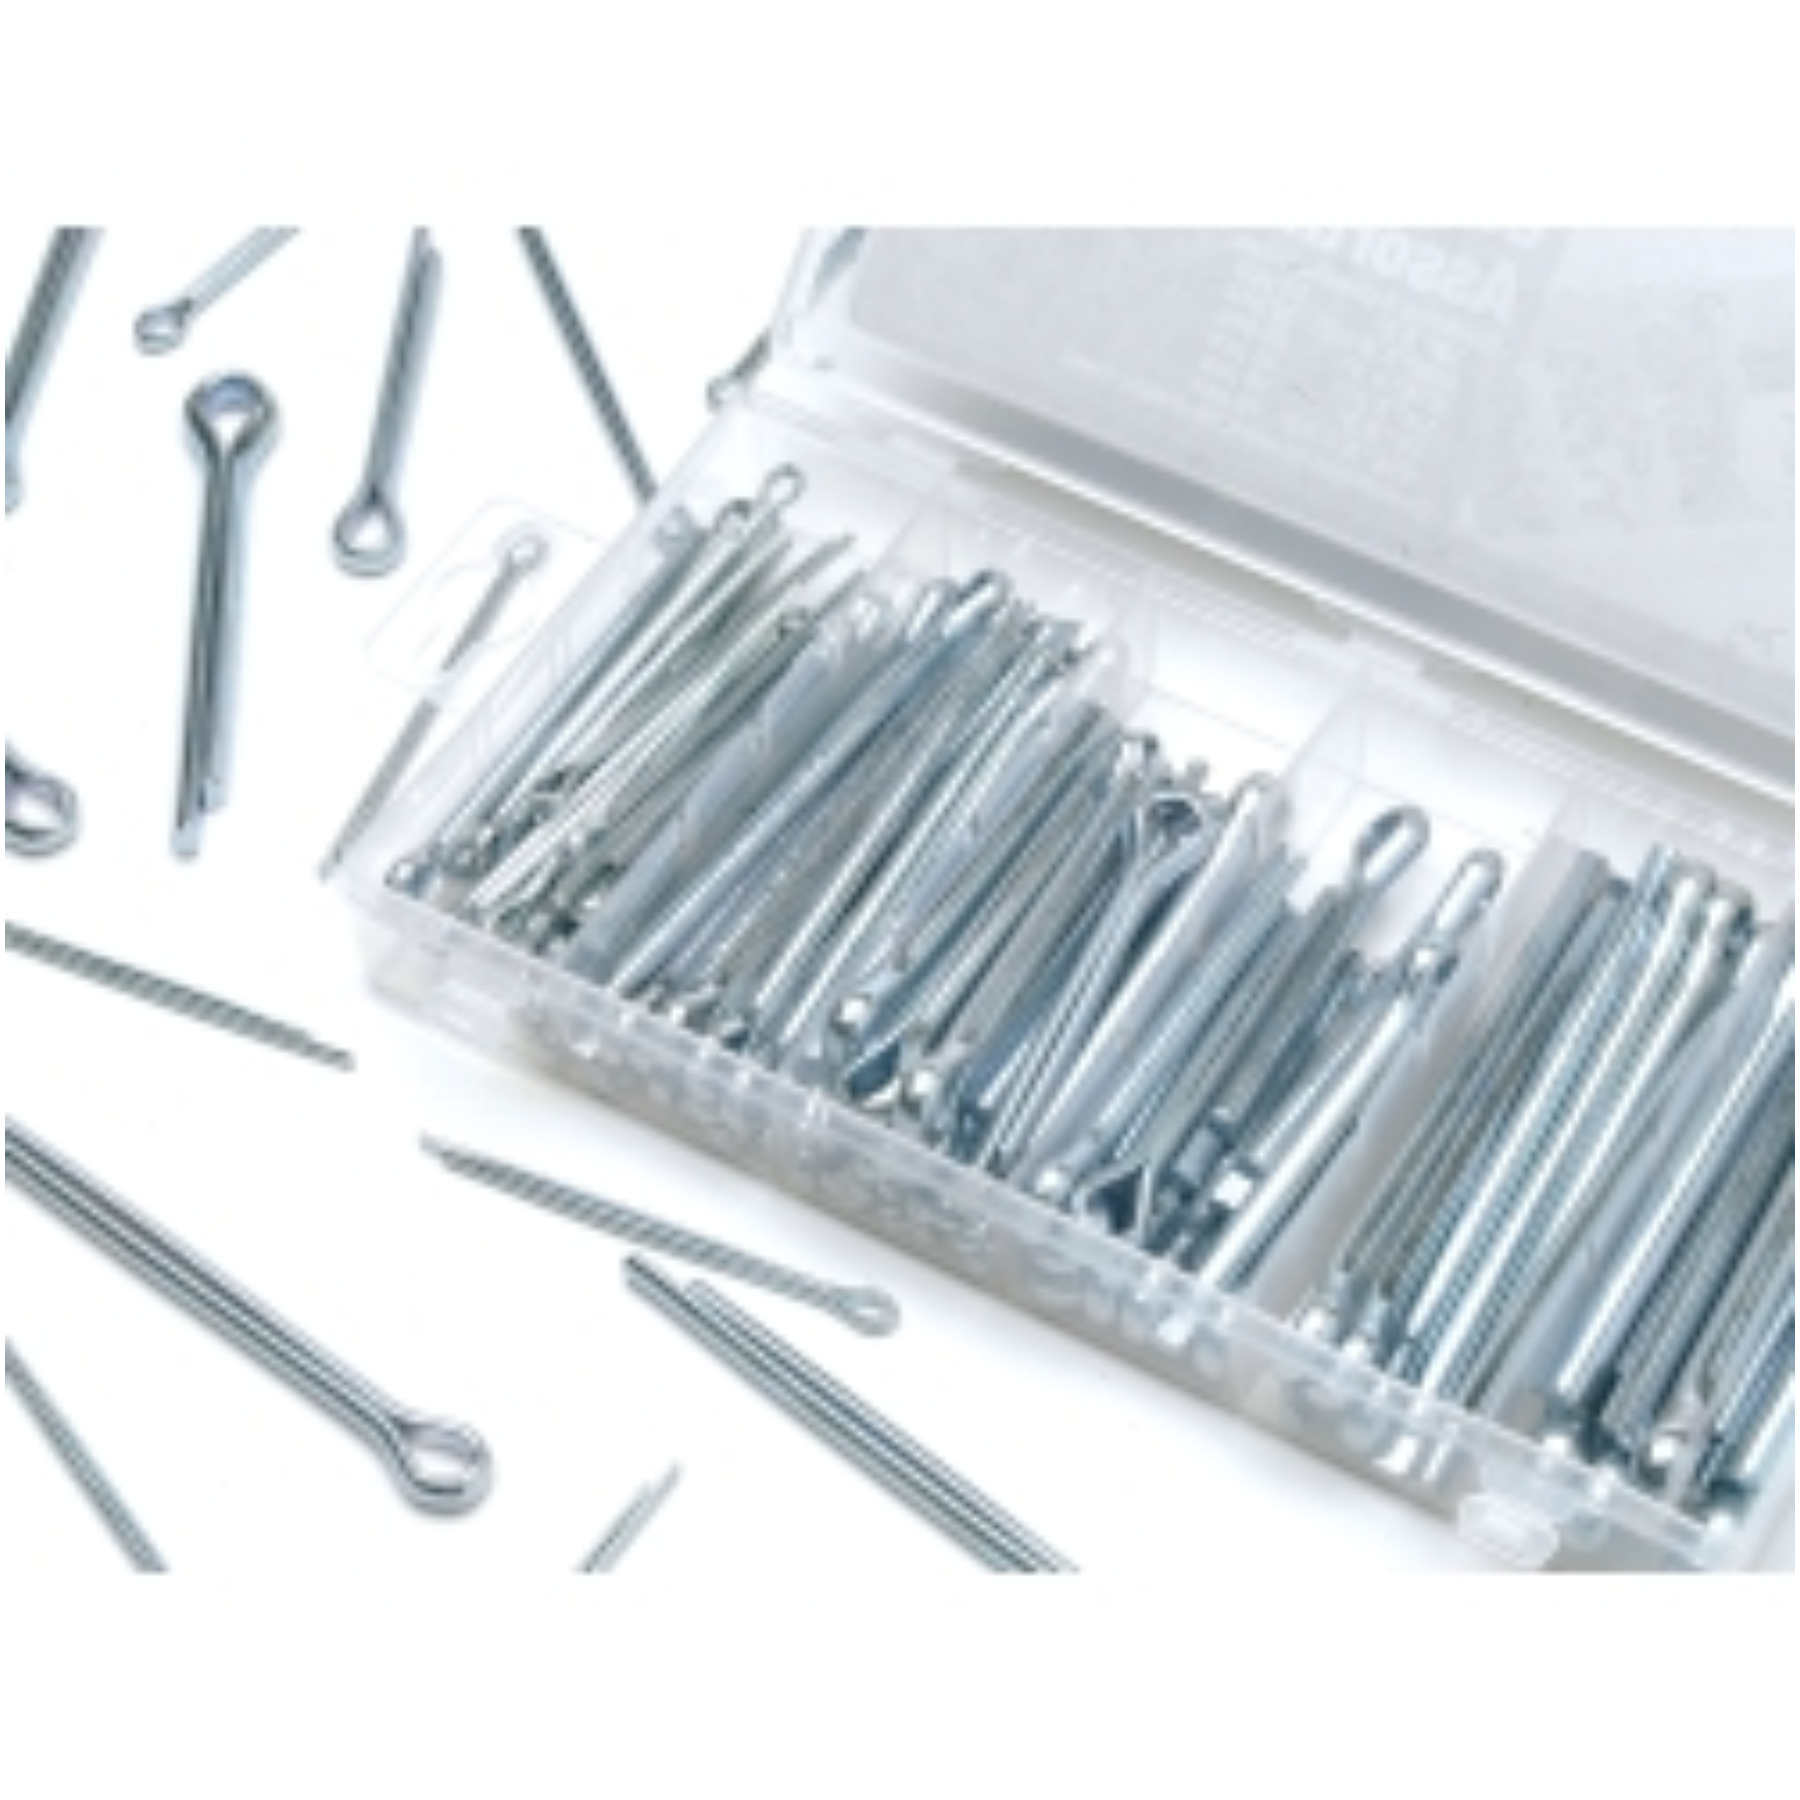 150PC LRG COTTER PIN SET